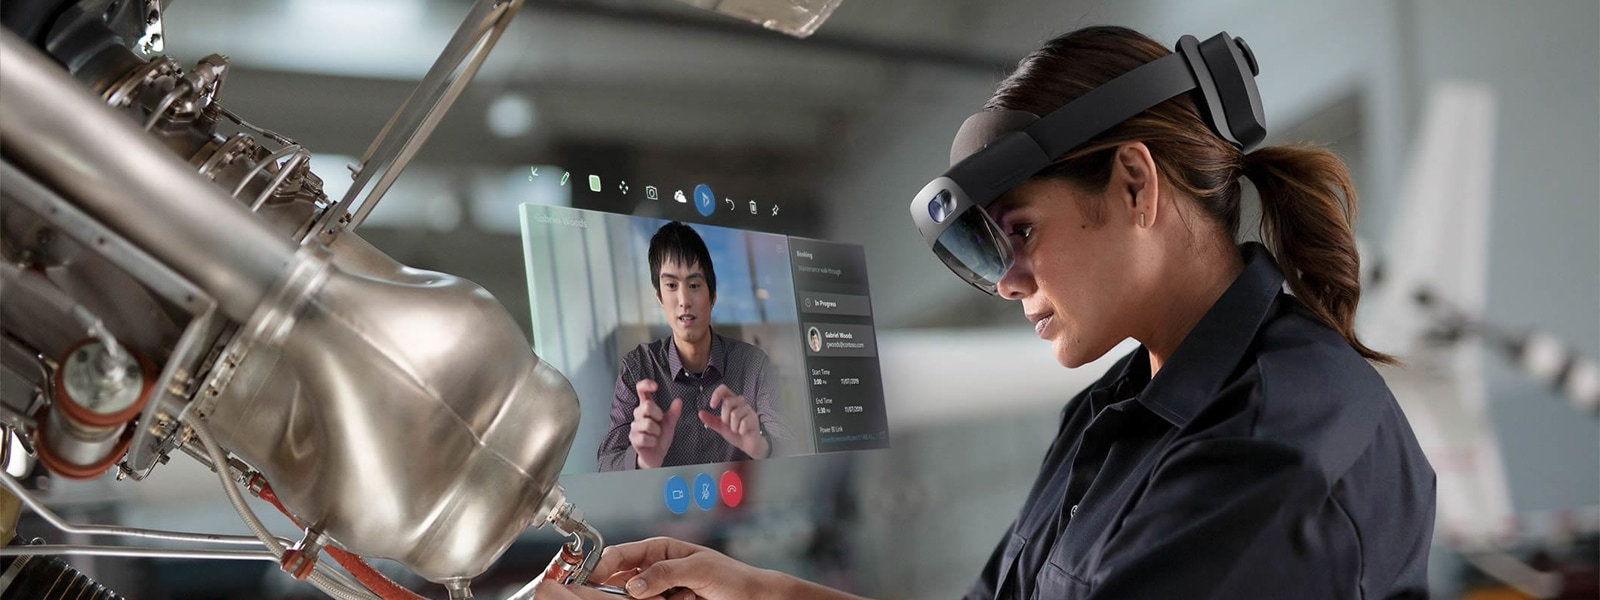 female manufacturing worker wearing HoloLens while working on machinery